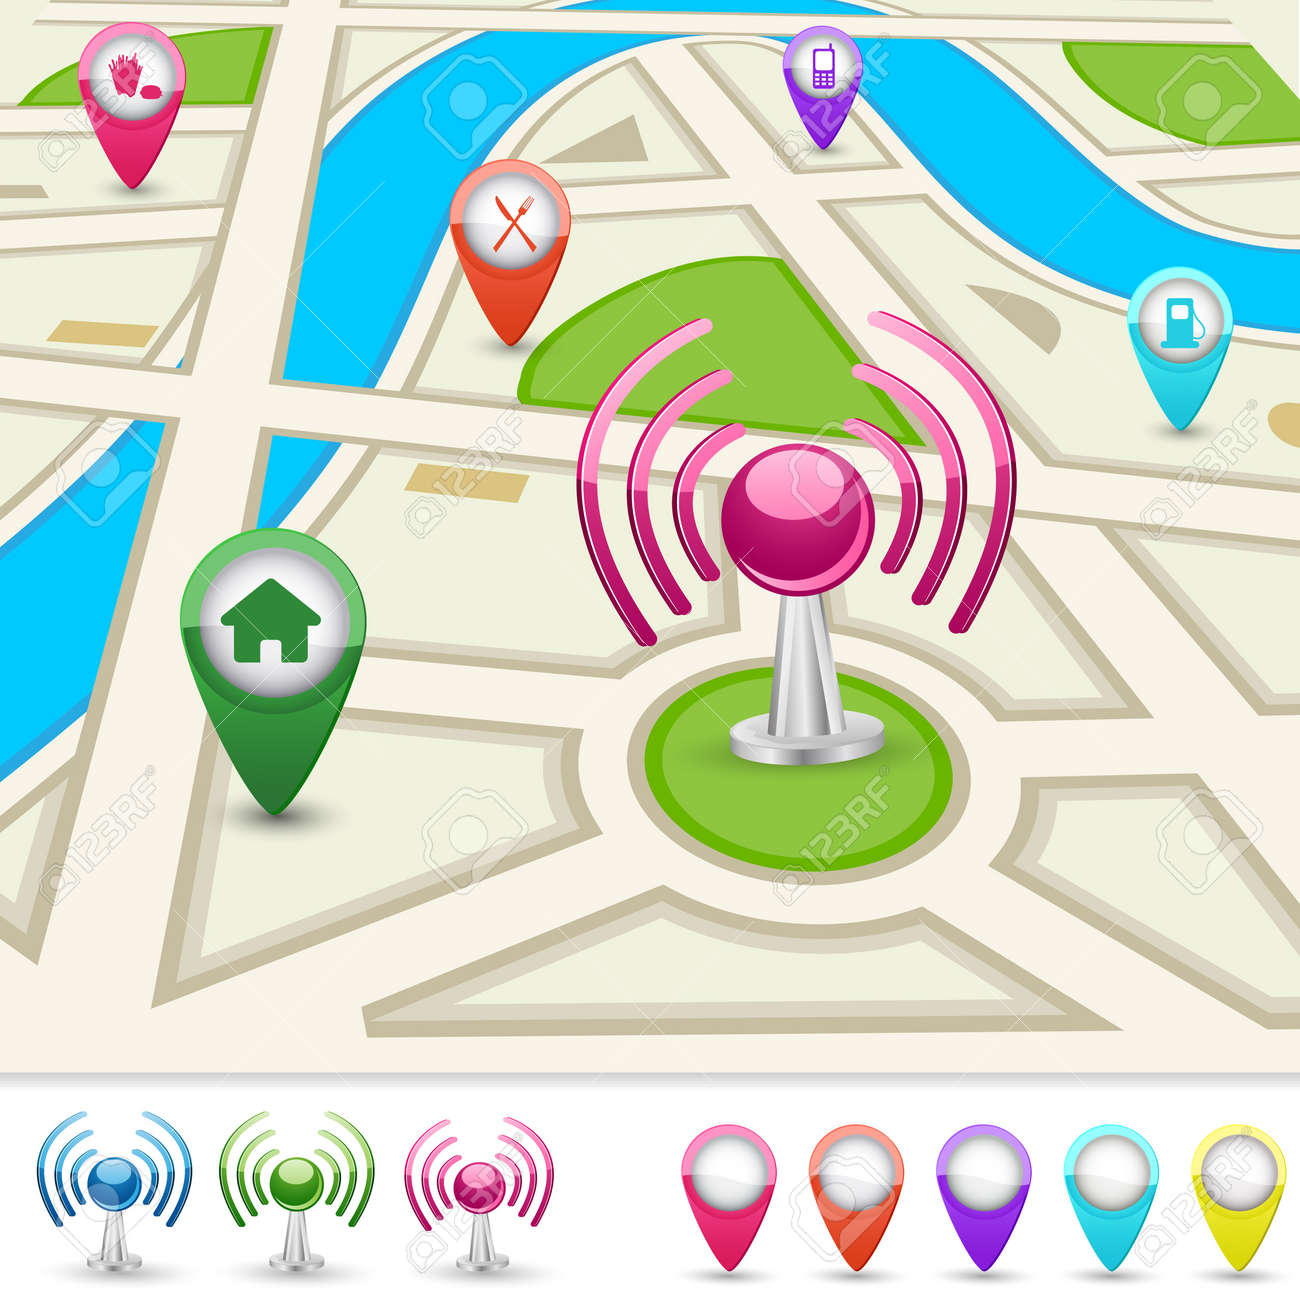 Road Map For GPS Application Royalty Free Cliparts Vectors And – Application Road Map